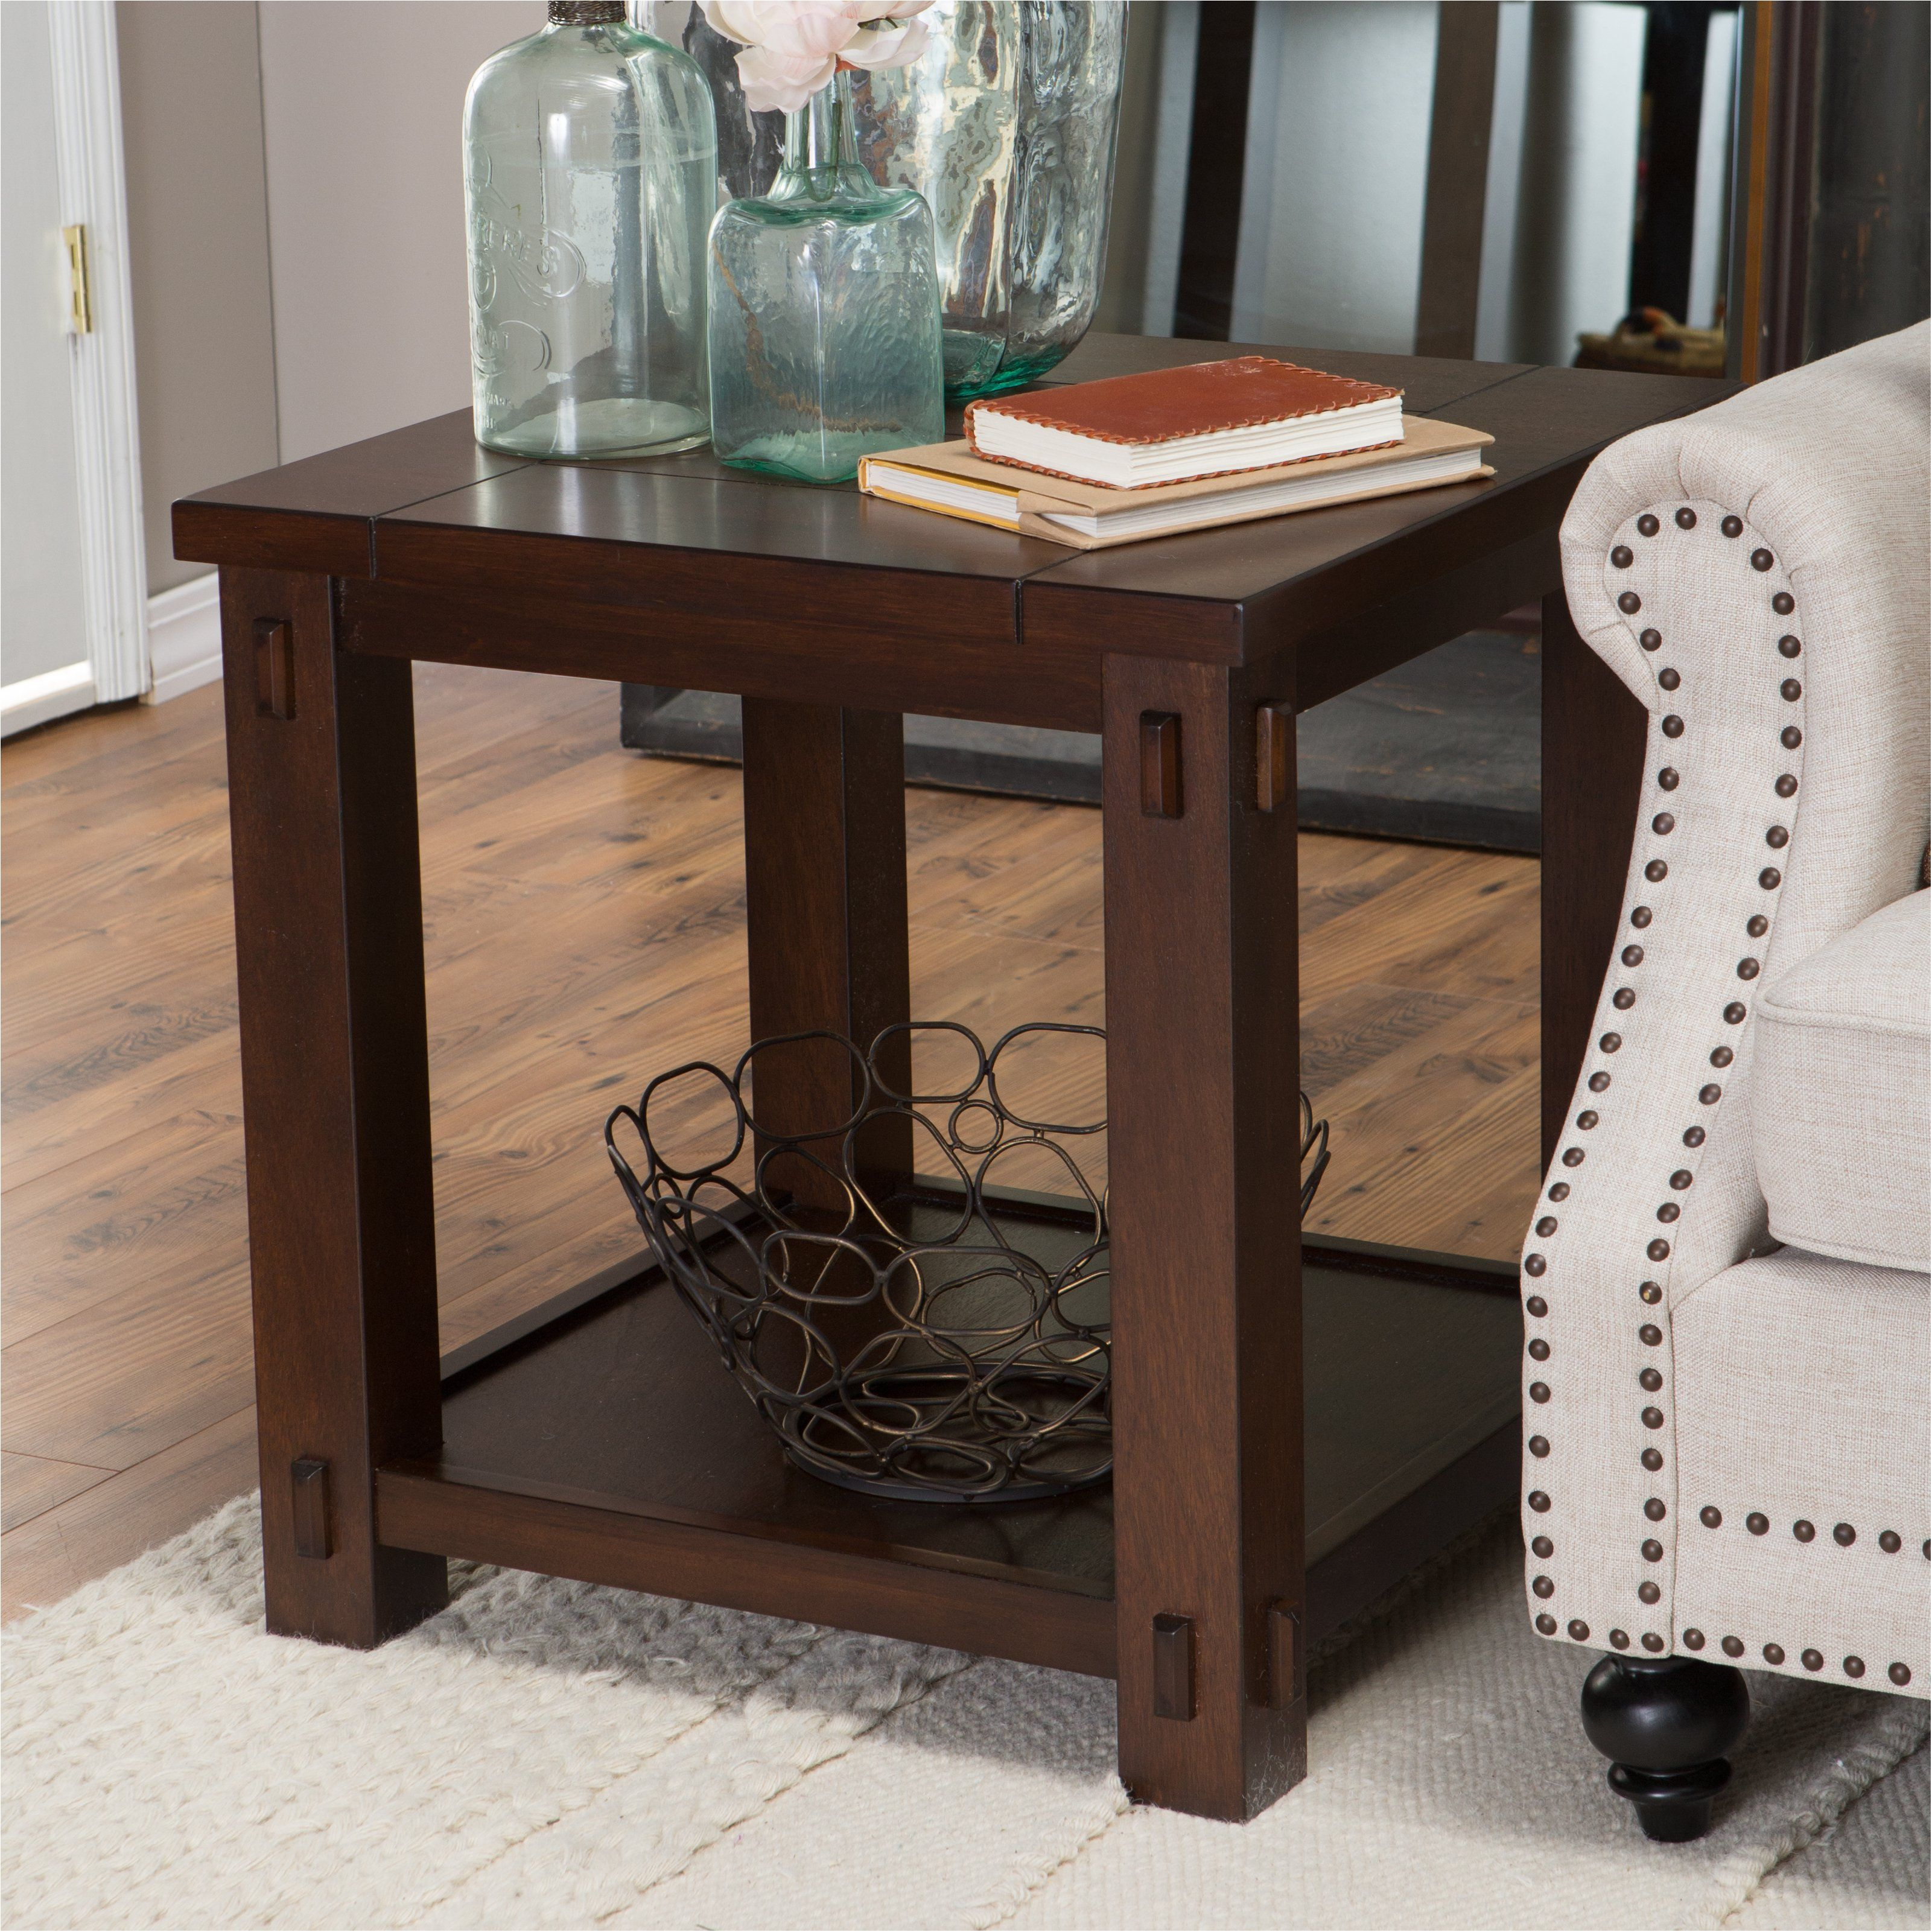 best winsome wood end table antique walnut kitchen dining excellently living bartlett square tables with usb ports accent marvelous red wingback chair lime green coffee tiny lamp